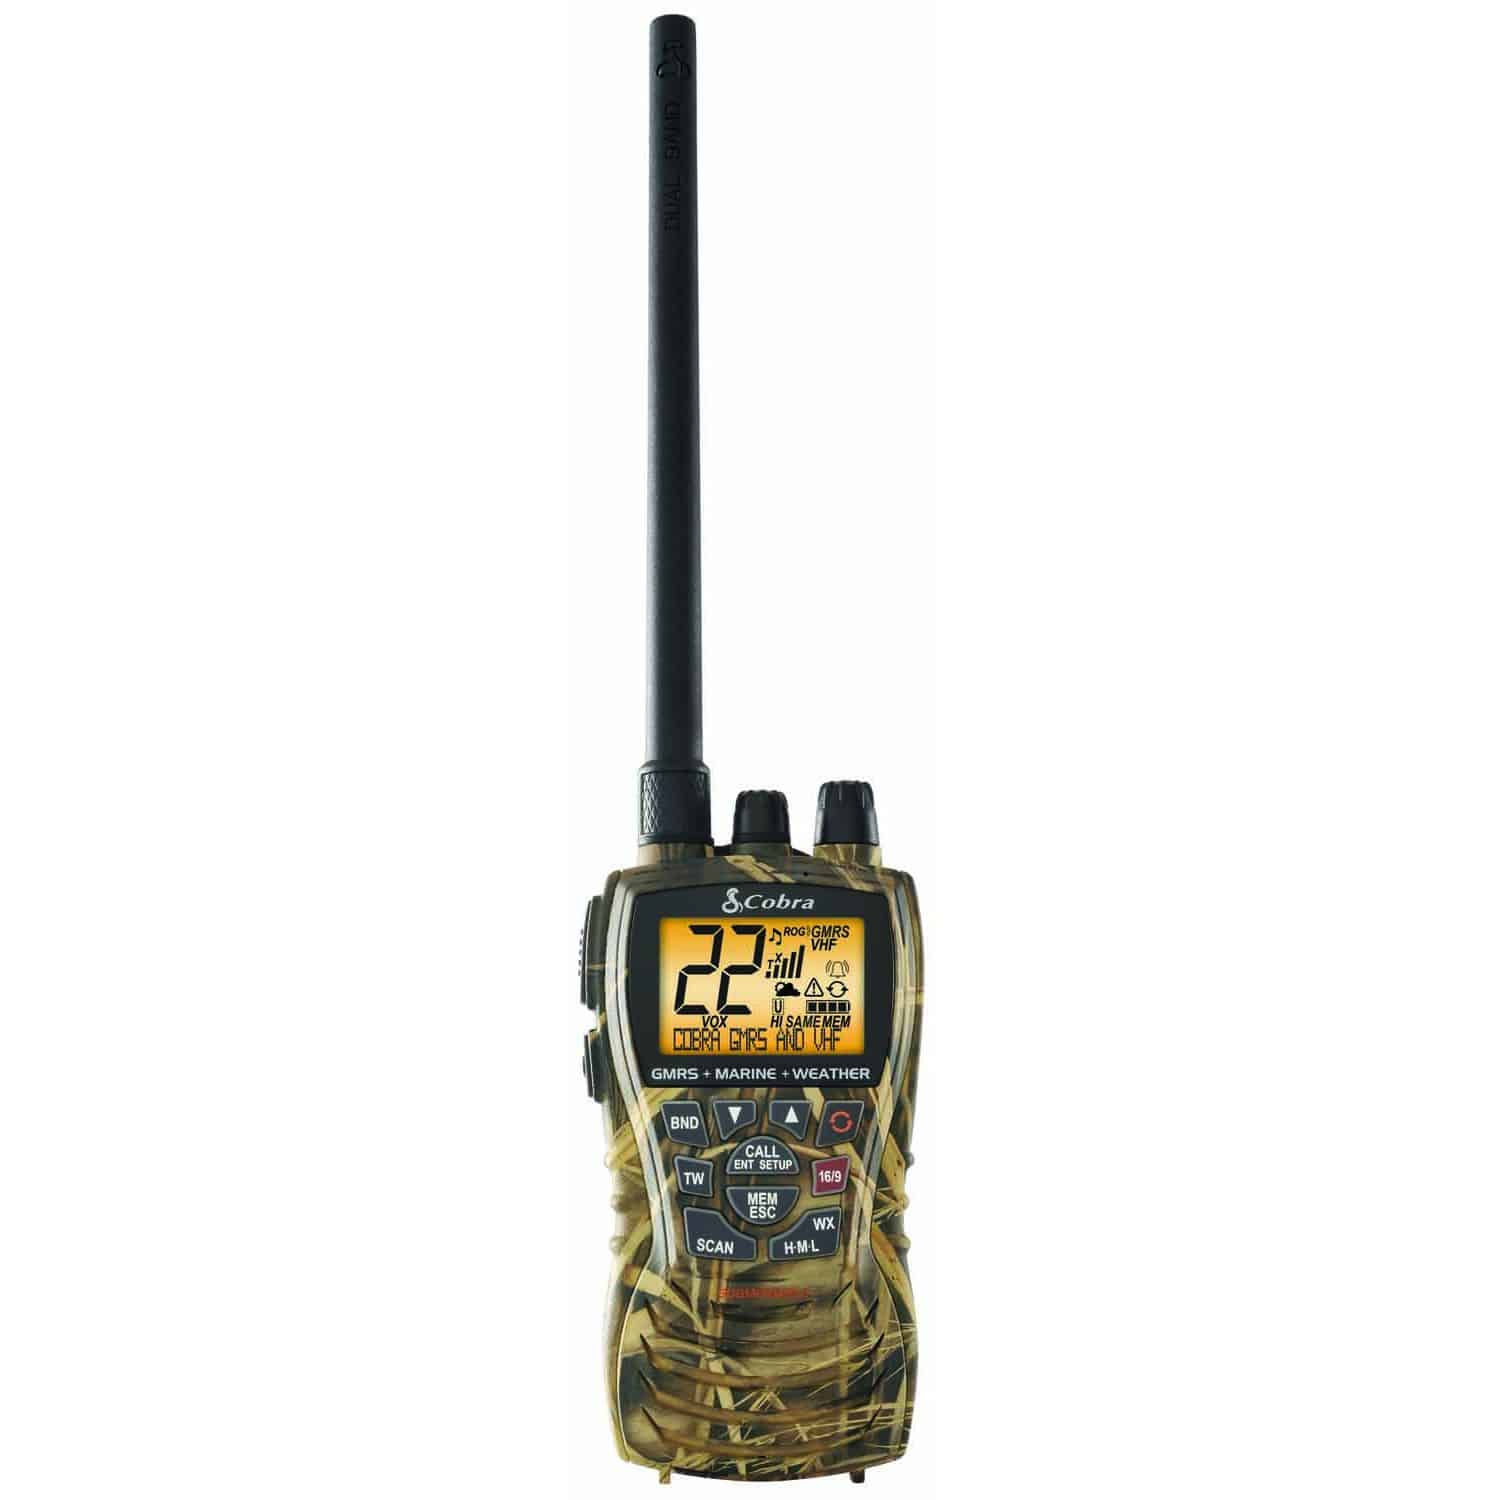 MRHH450CAMO - Cobra® 6 Watt Dual Band VHF And GMRS Handheld Radio